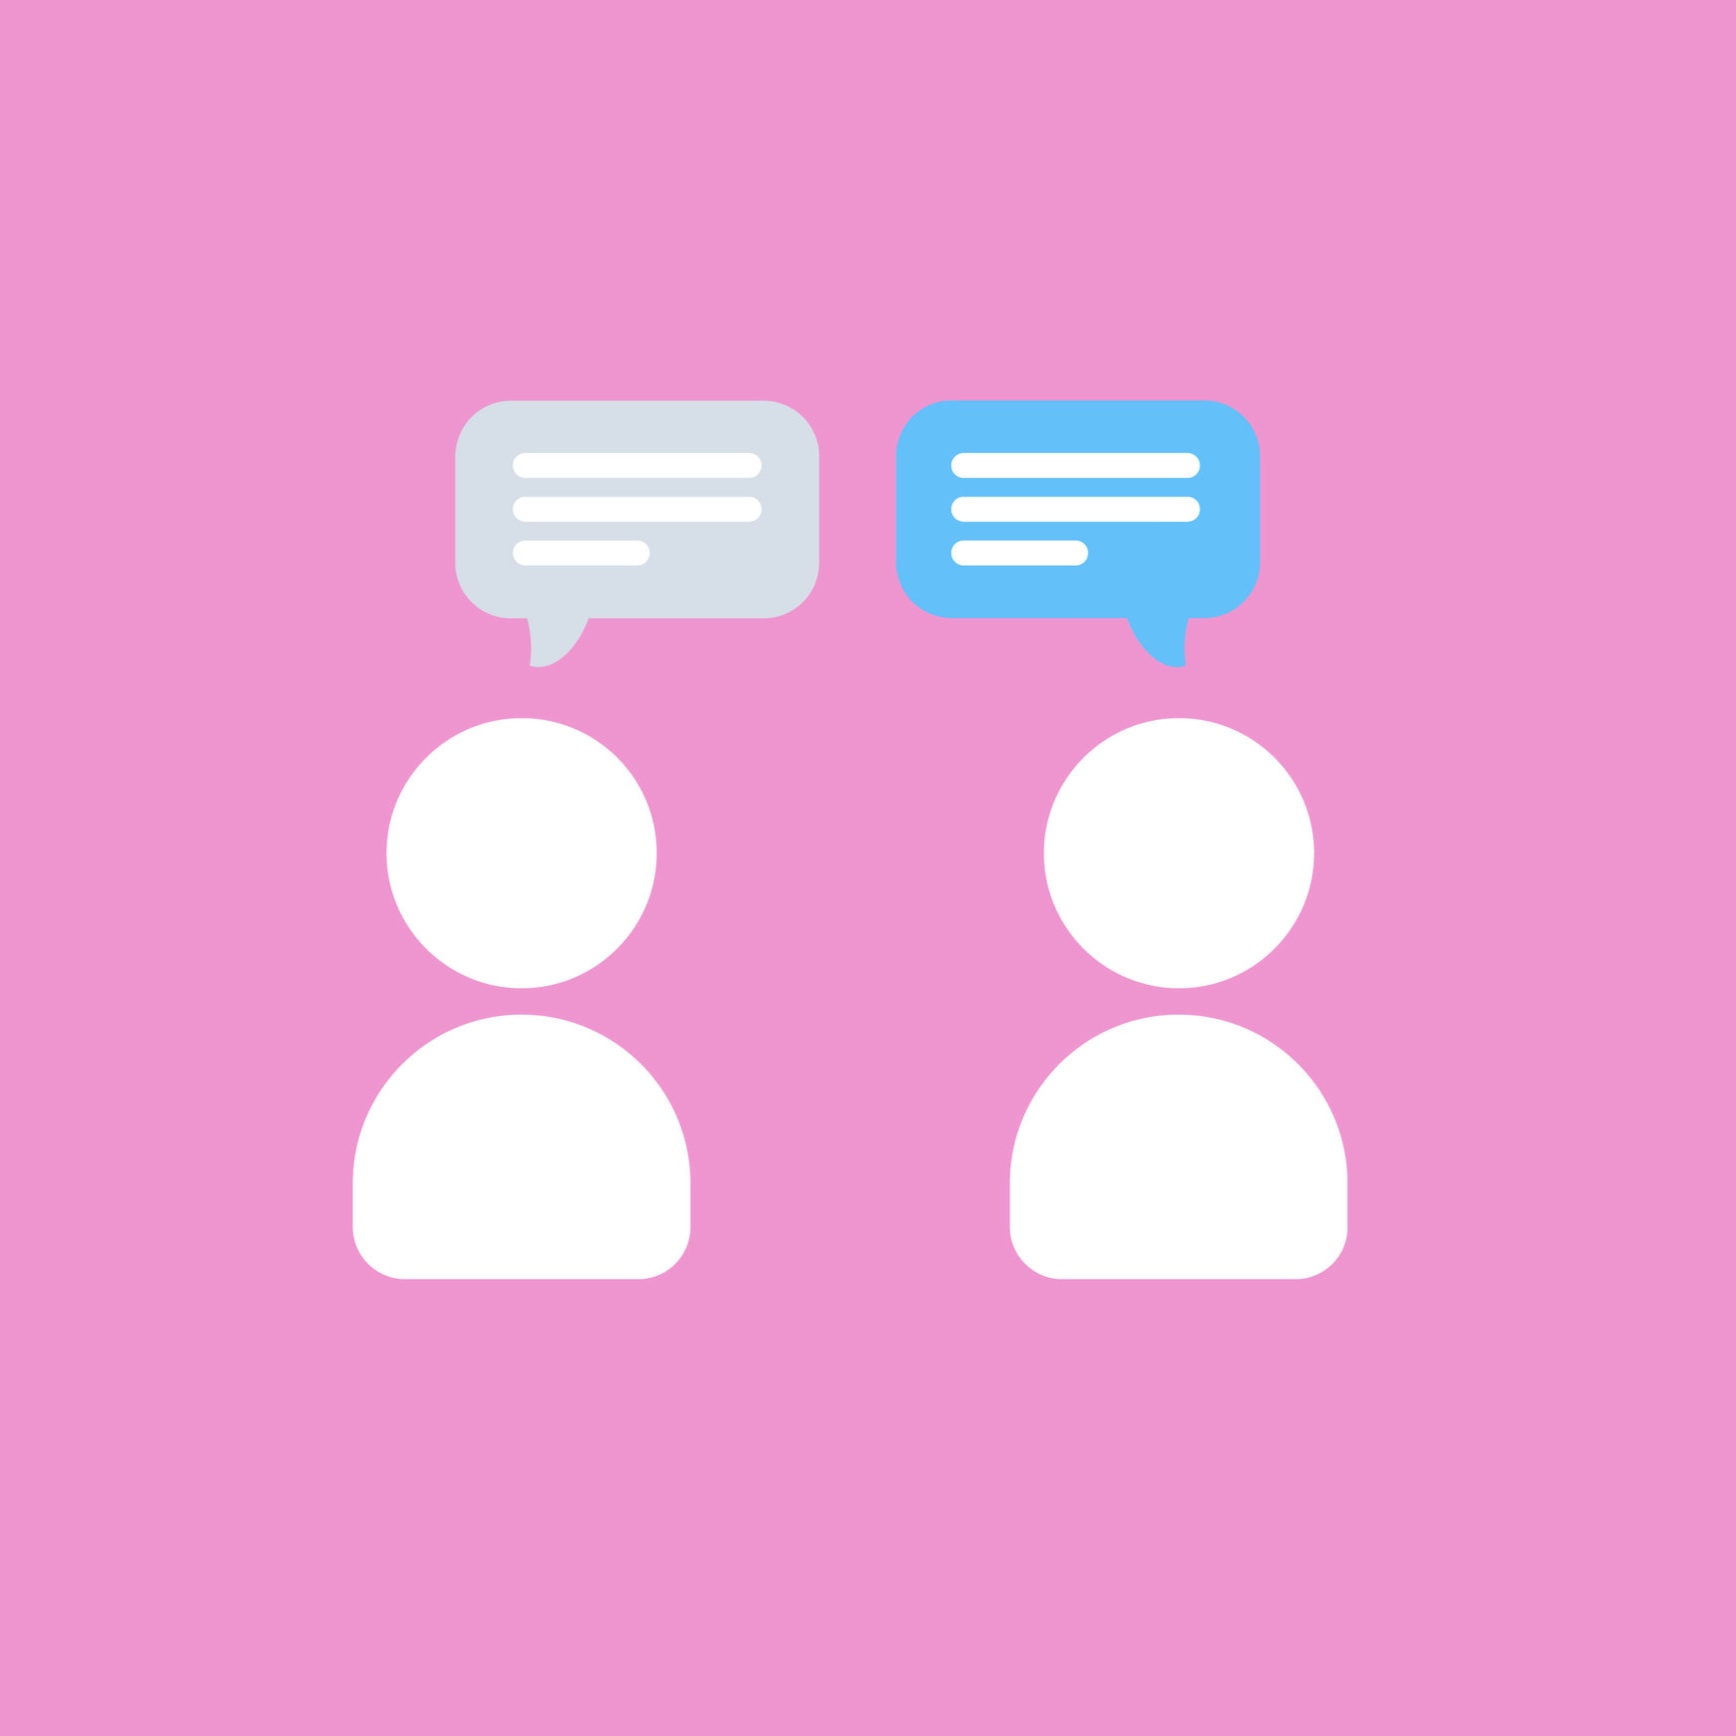 Open Chat - Open a discussion from members section in your task.